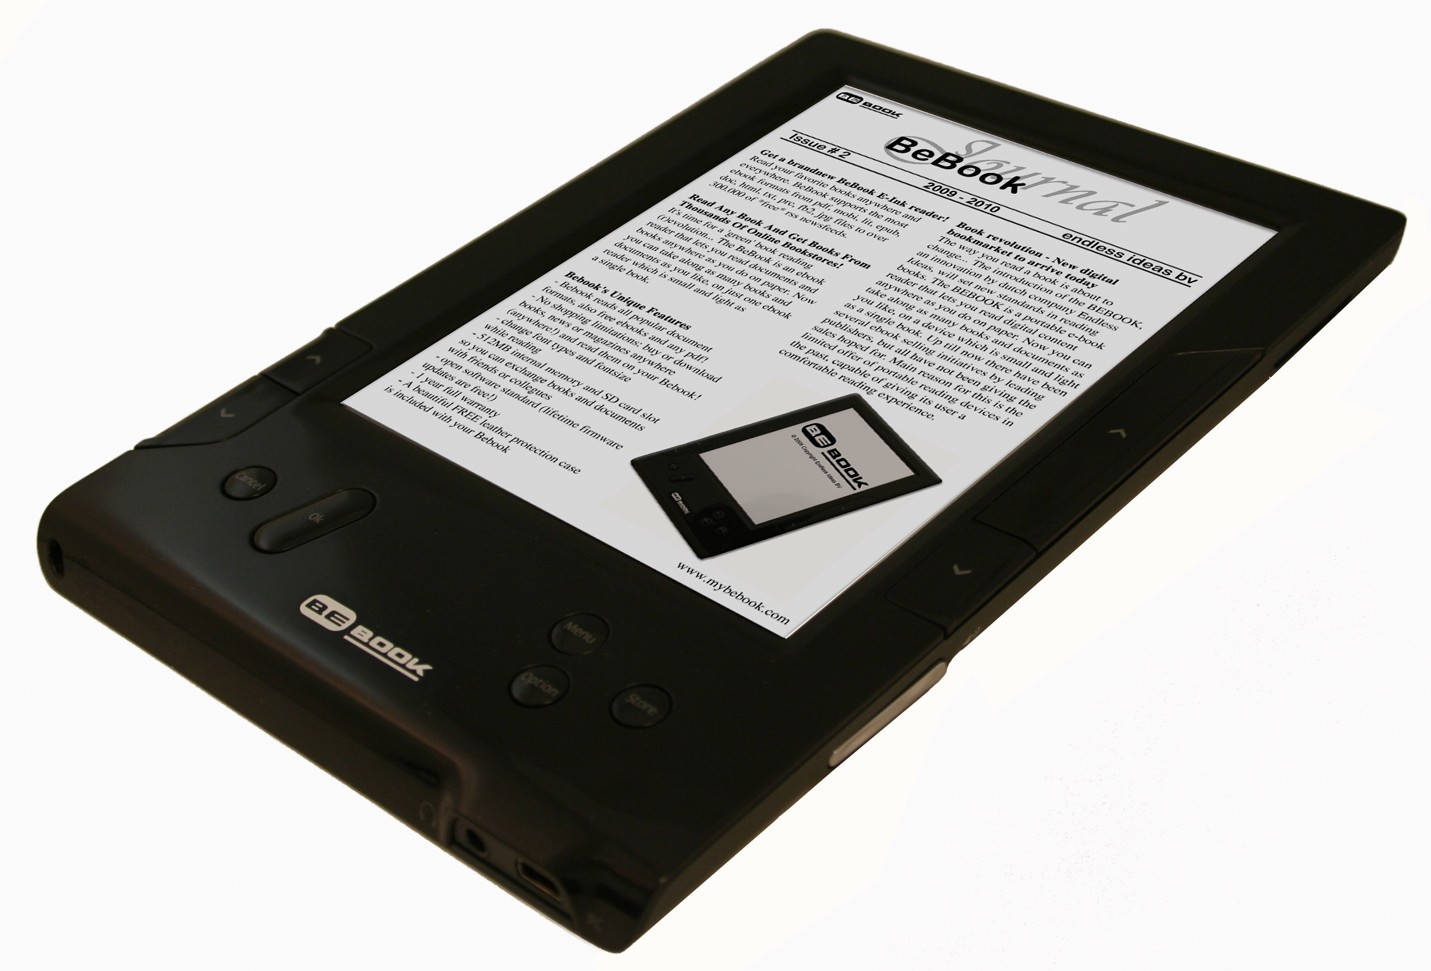 BeBook 2 announced: wireless, touchscreen & easier controls